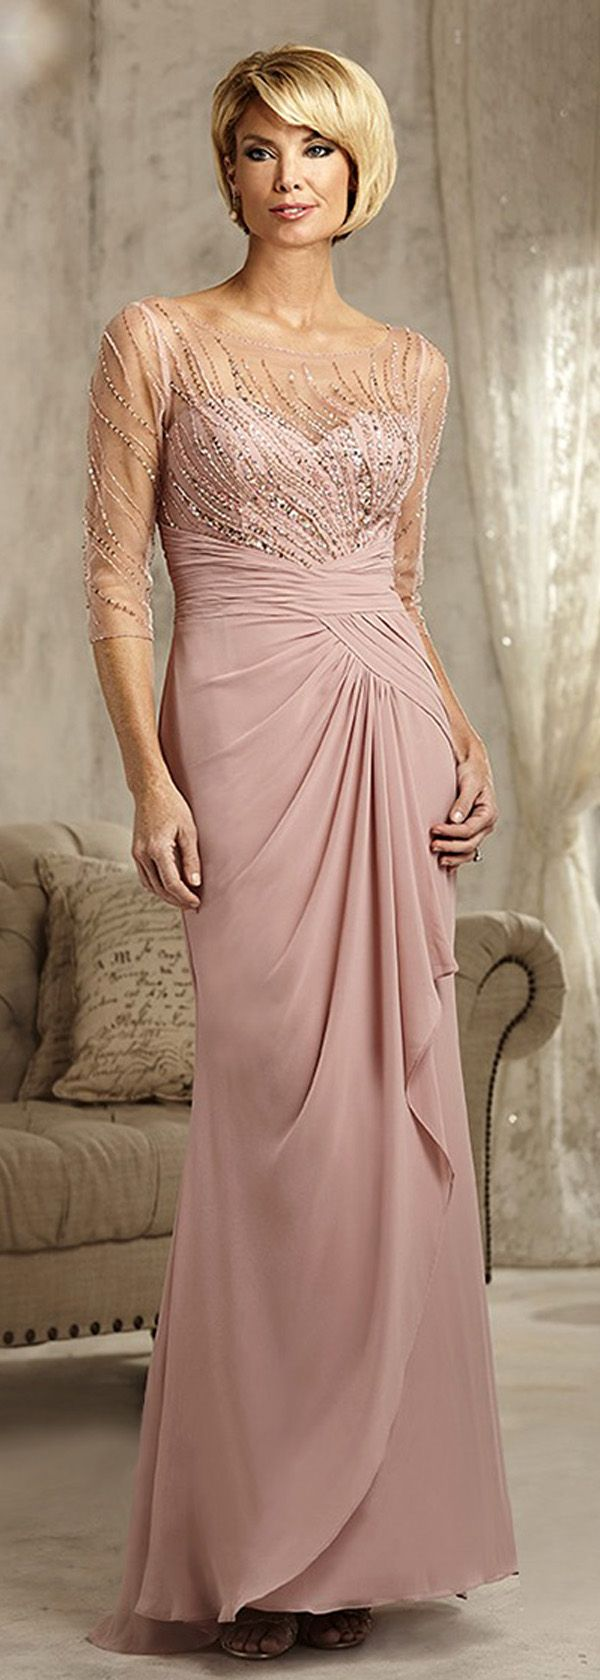 Best 25  Mother of bride dresses ideas only on Pinterest | Groom ...